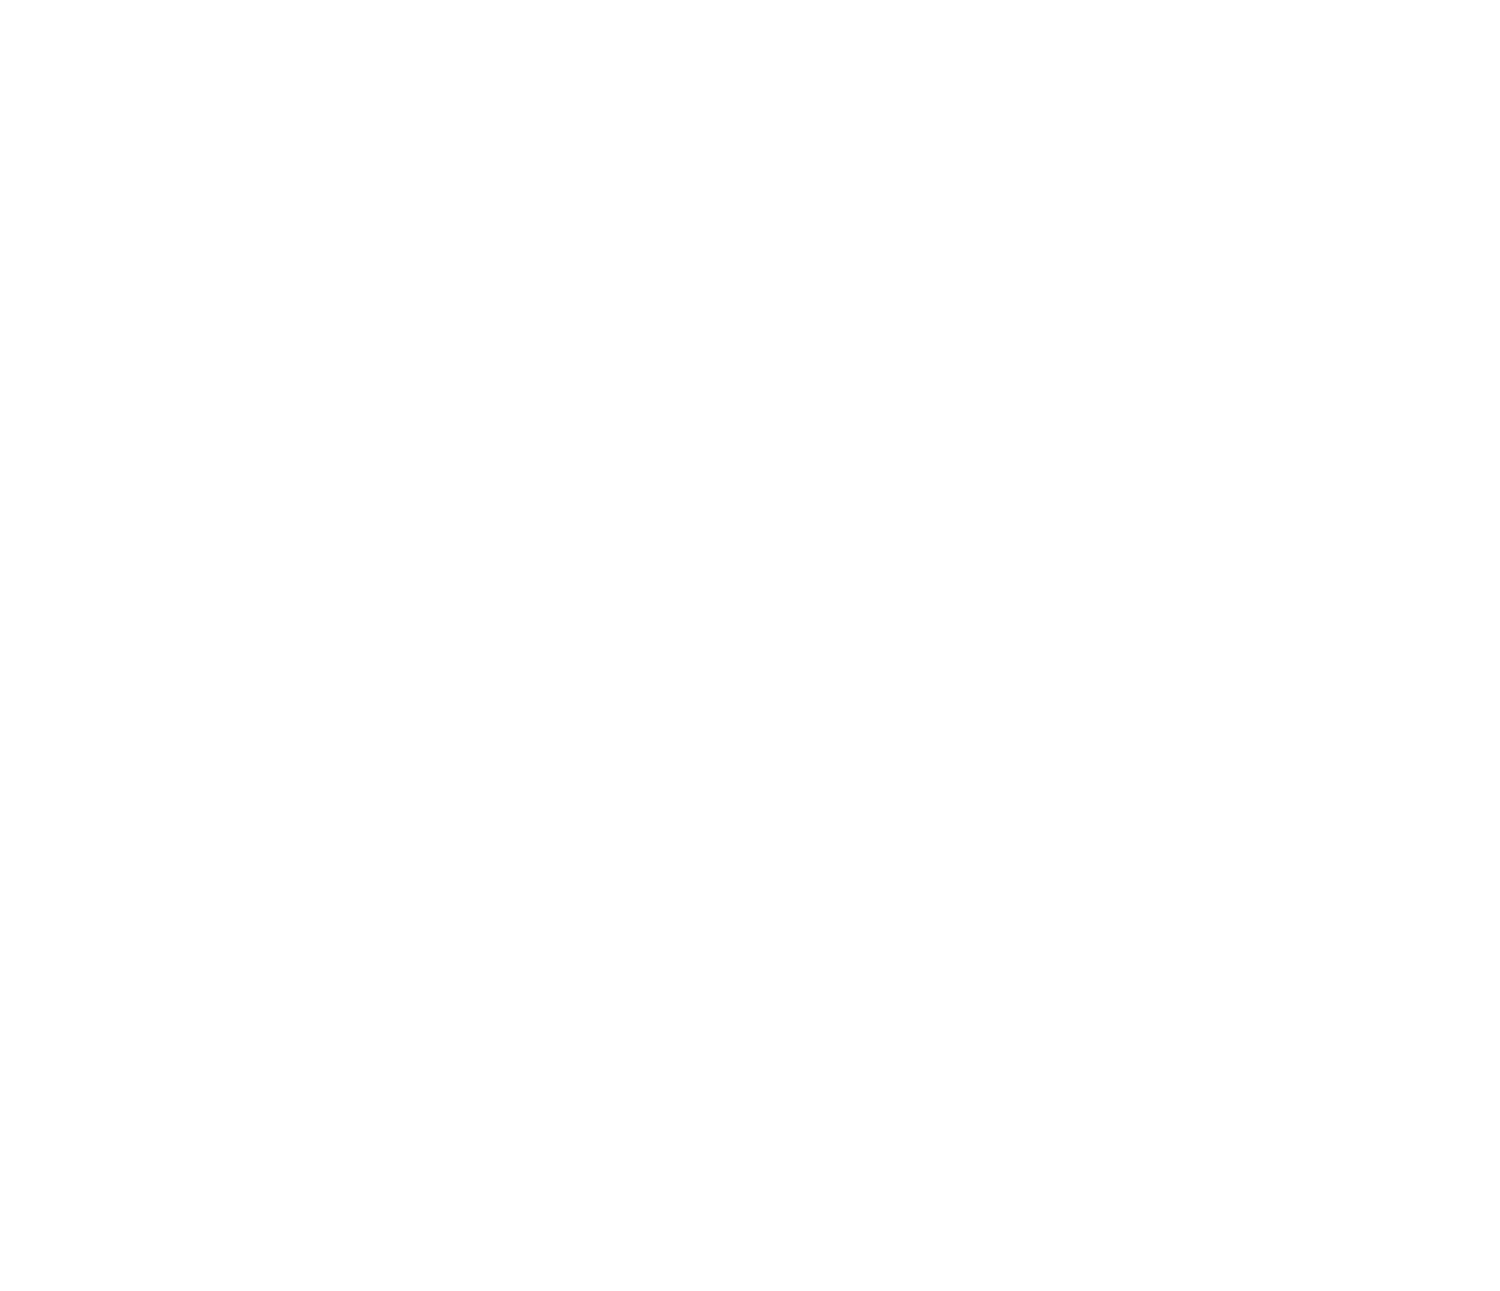 Secatogue Brewing Co.